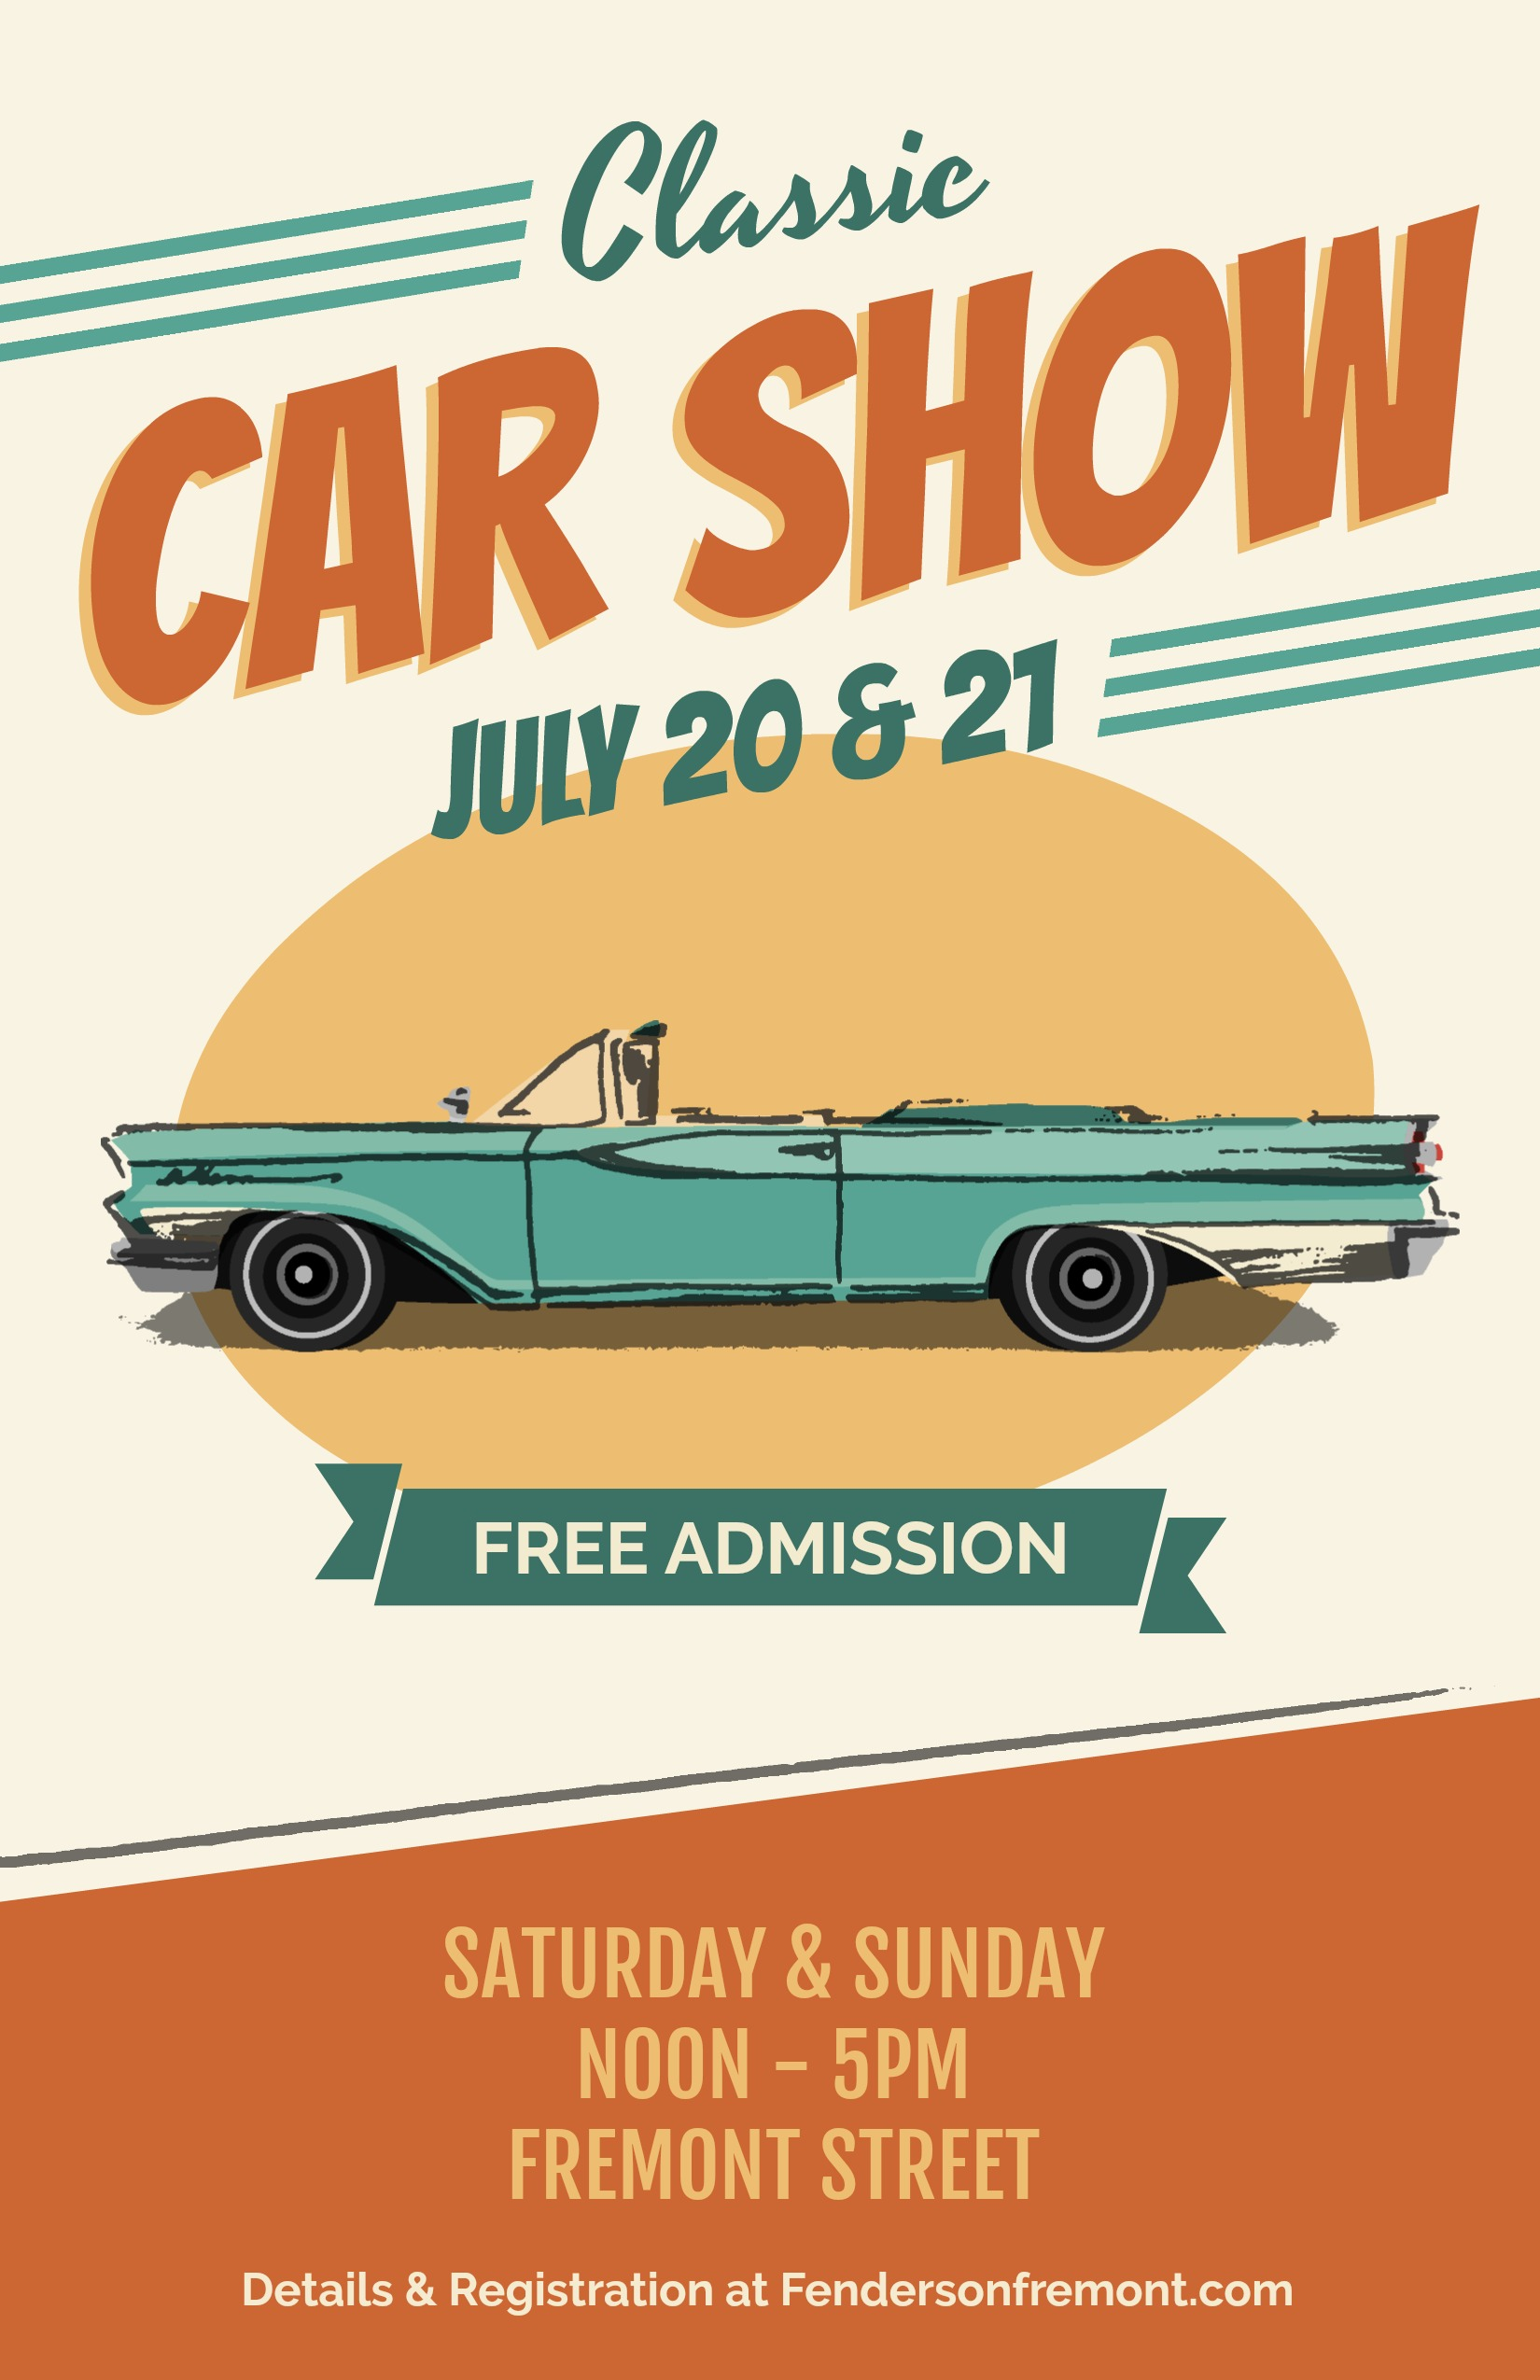 Classy Car Show PicMonkey - Classic car show poster template